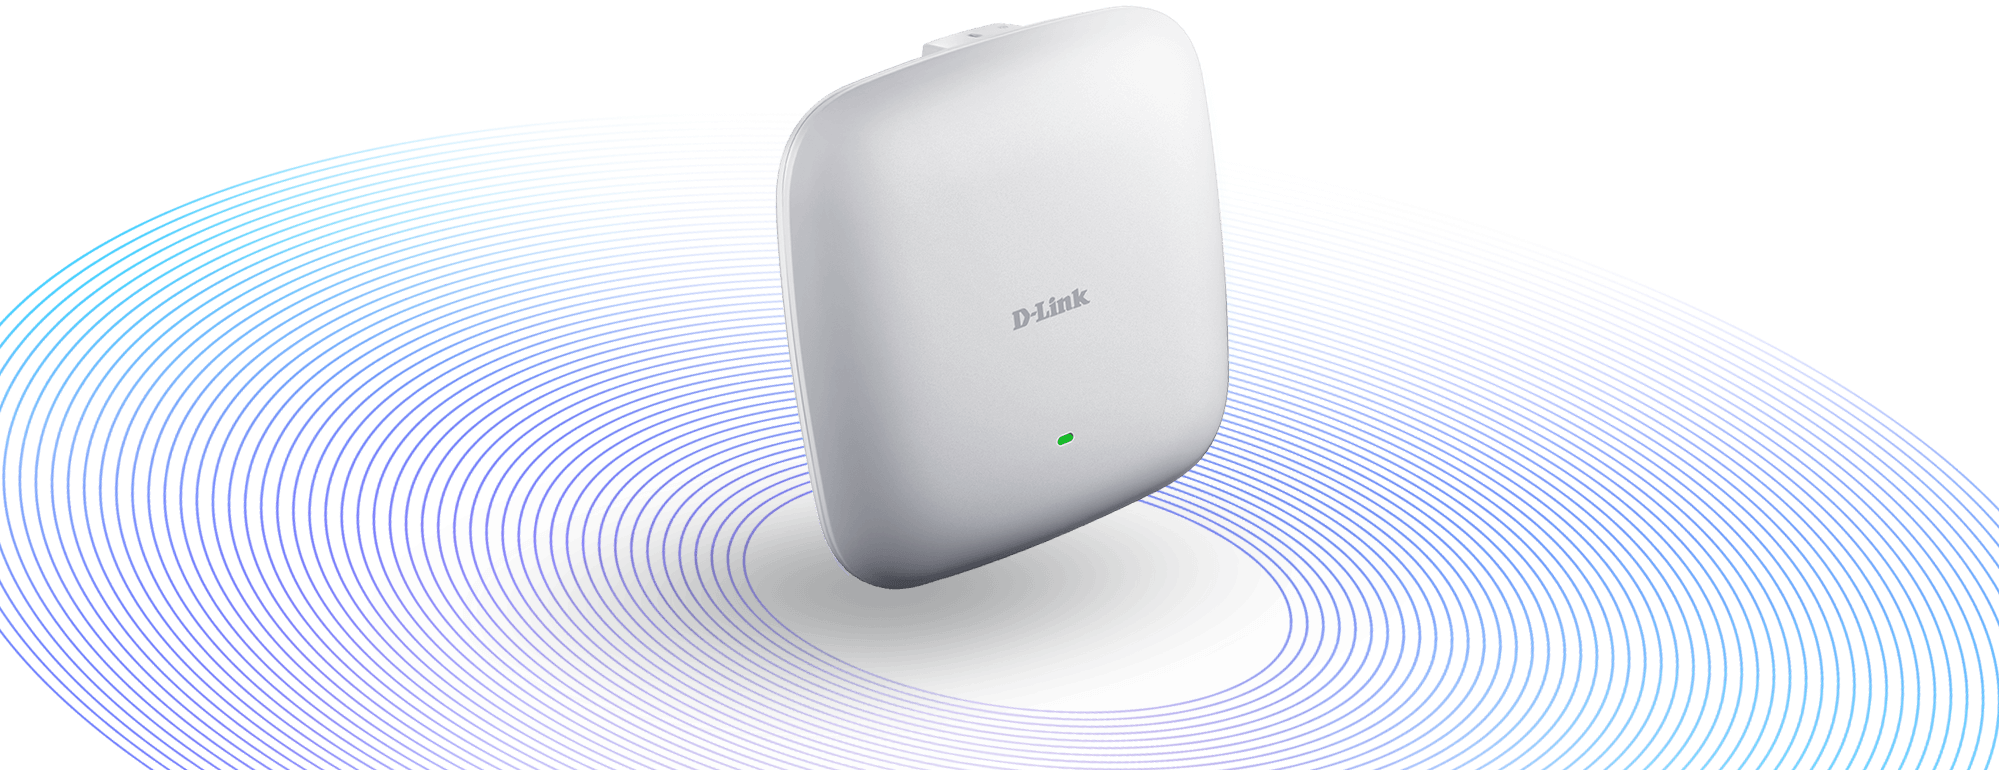 D-Link DAP-2680 Wireless AC1750 Wave 2 Dual-Band PoE Access Point